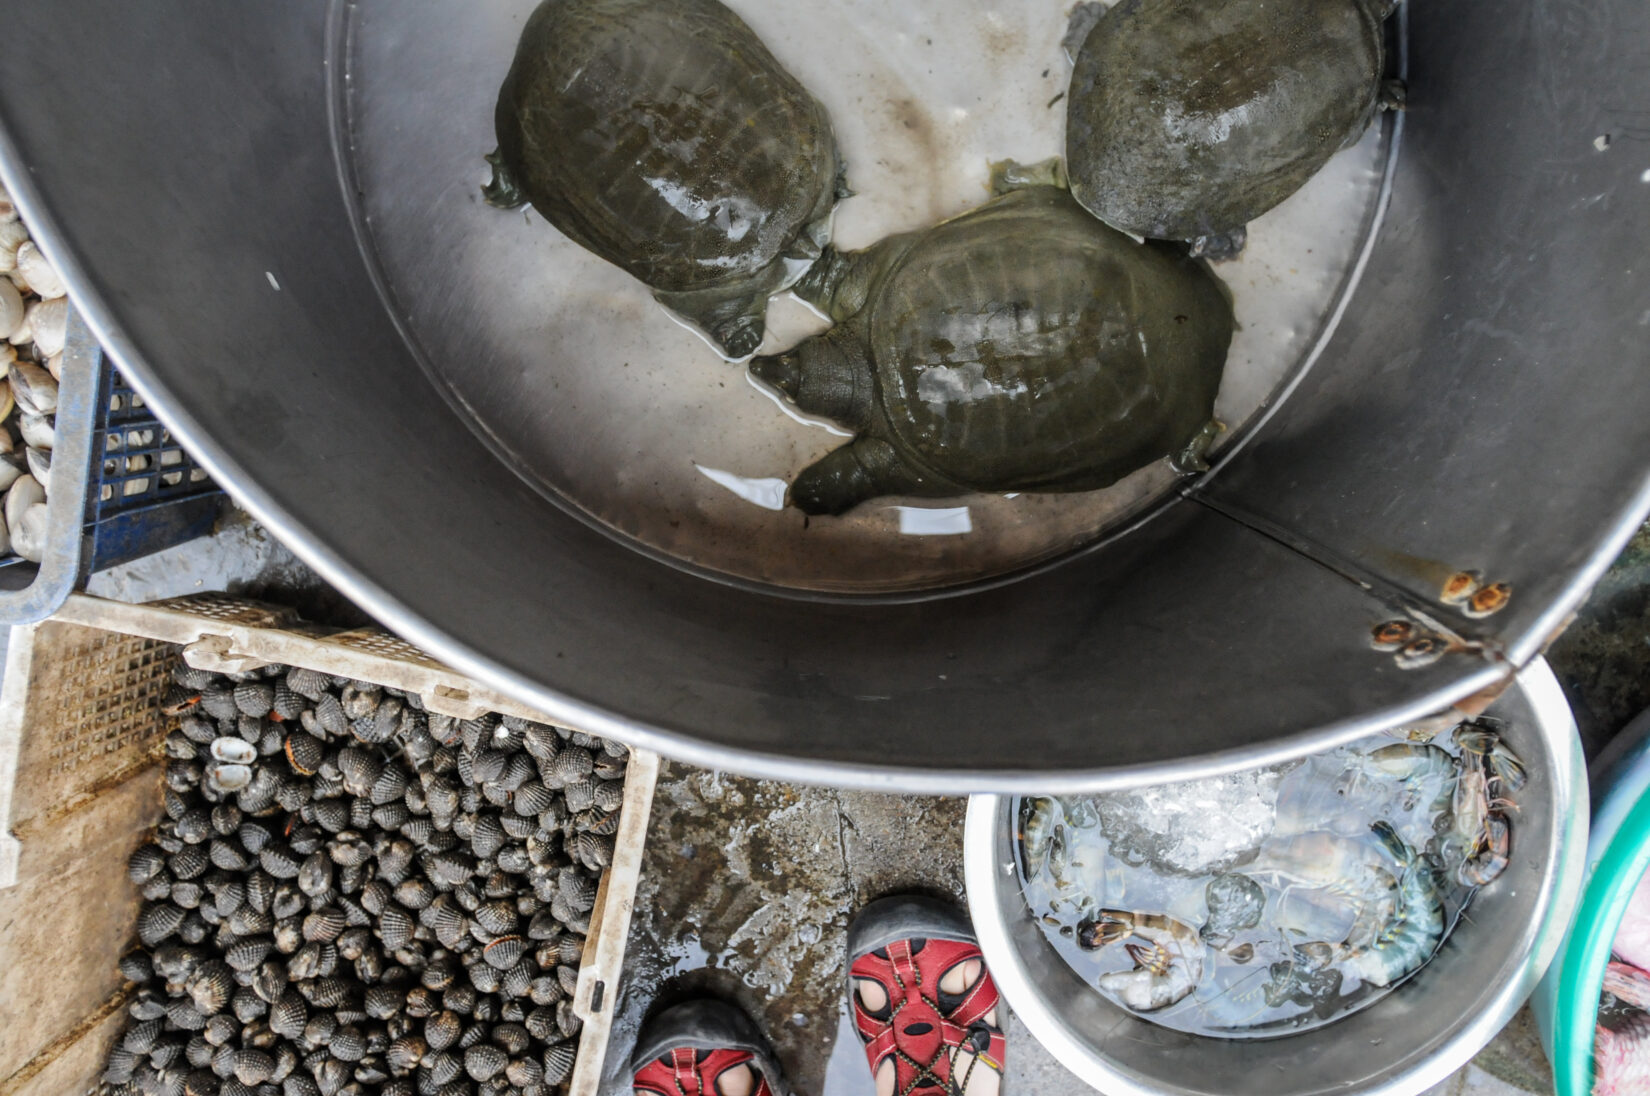 Turtles and shrimp in metal buckets